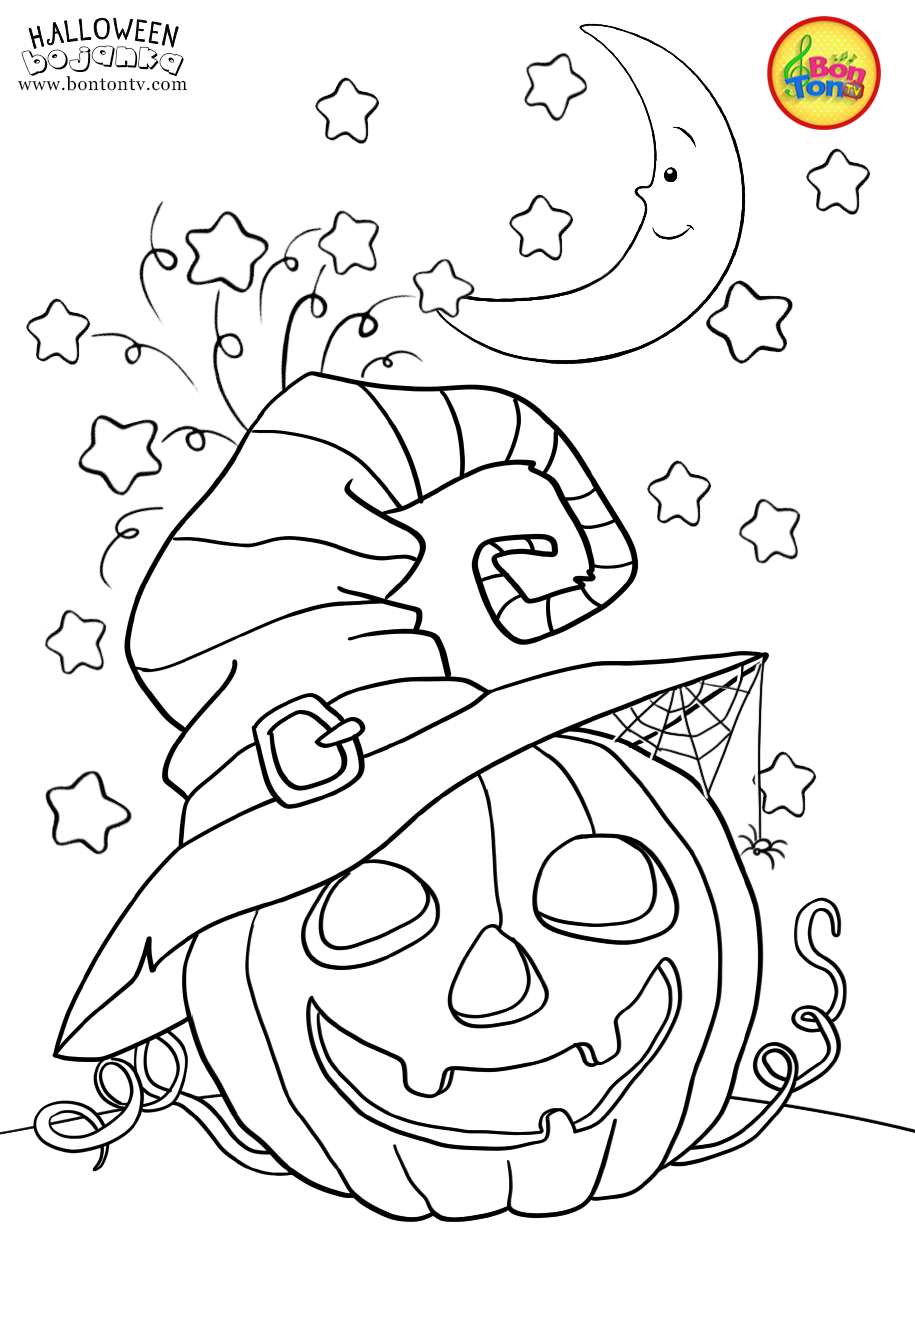 Free Halloween Coloring Pages For Kids Or For The Kid In You Free Halloween Coloring Pages Monster Coloring Pages Halloween Coloring Book